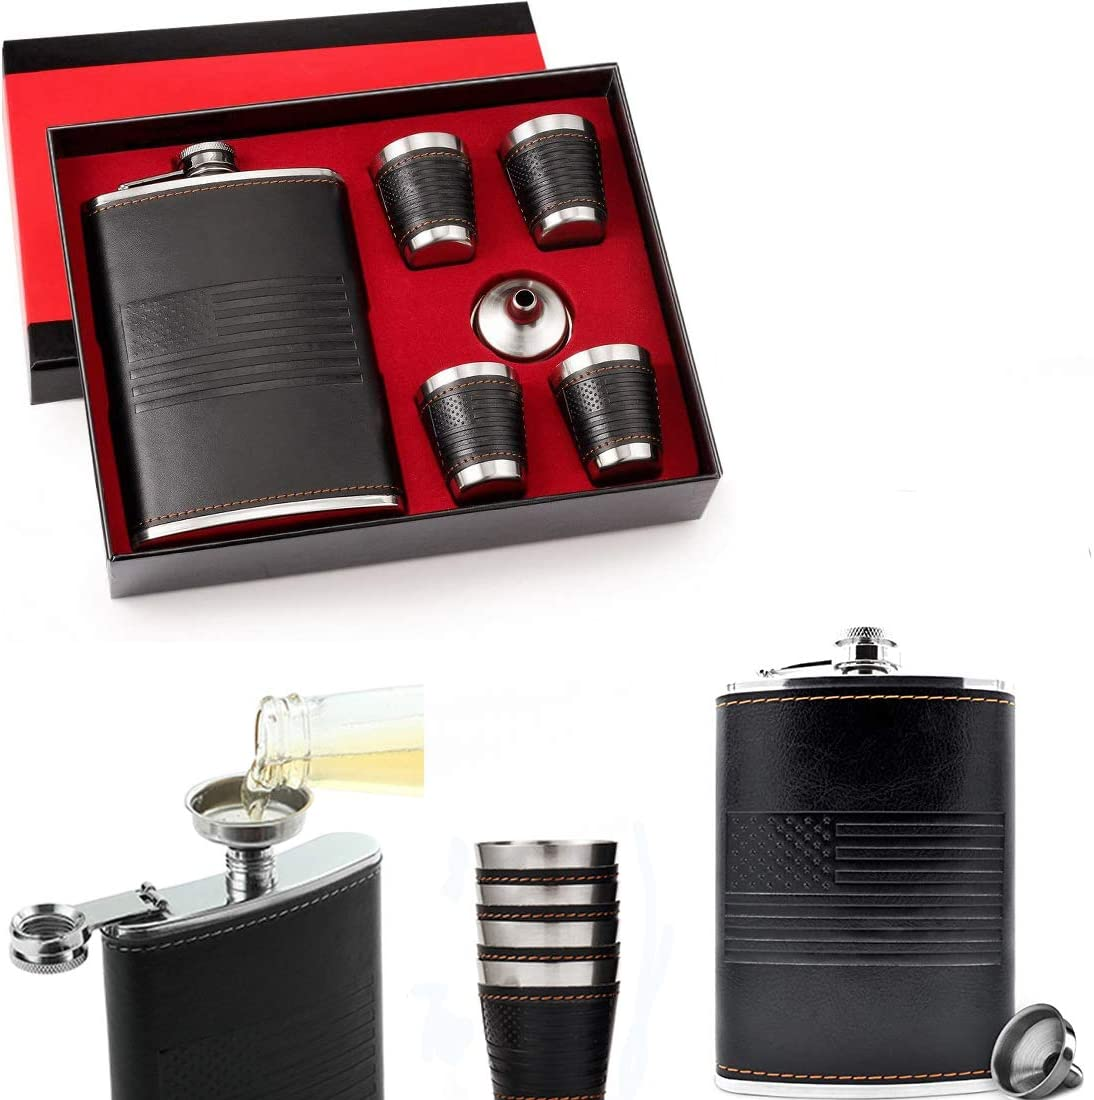 9 Ounce American Flag Flask Gift sets for Men- 18/8 Food Grade Stainless Steel Leak Proof with With Funnel and 4 Cups